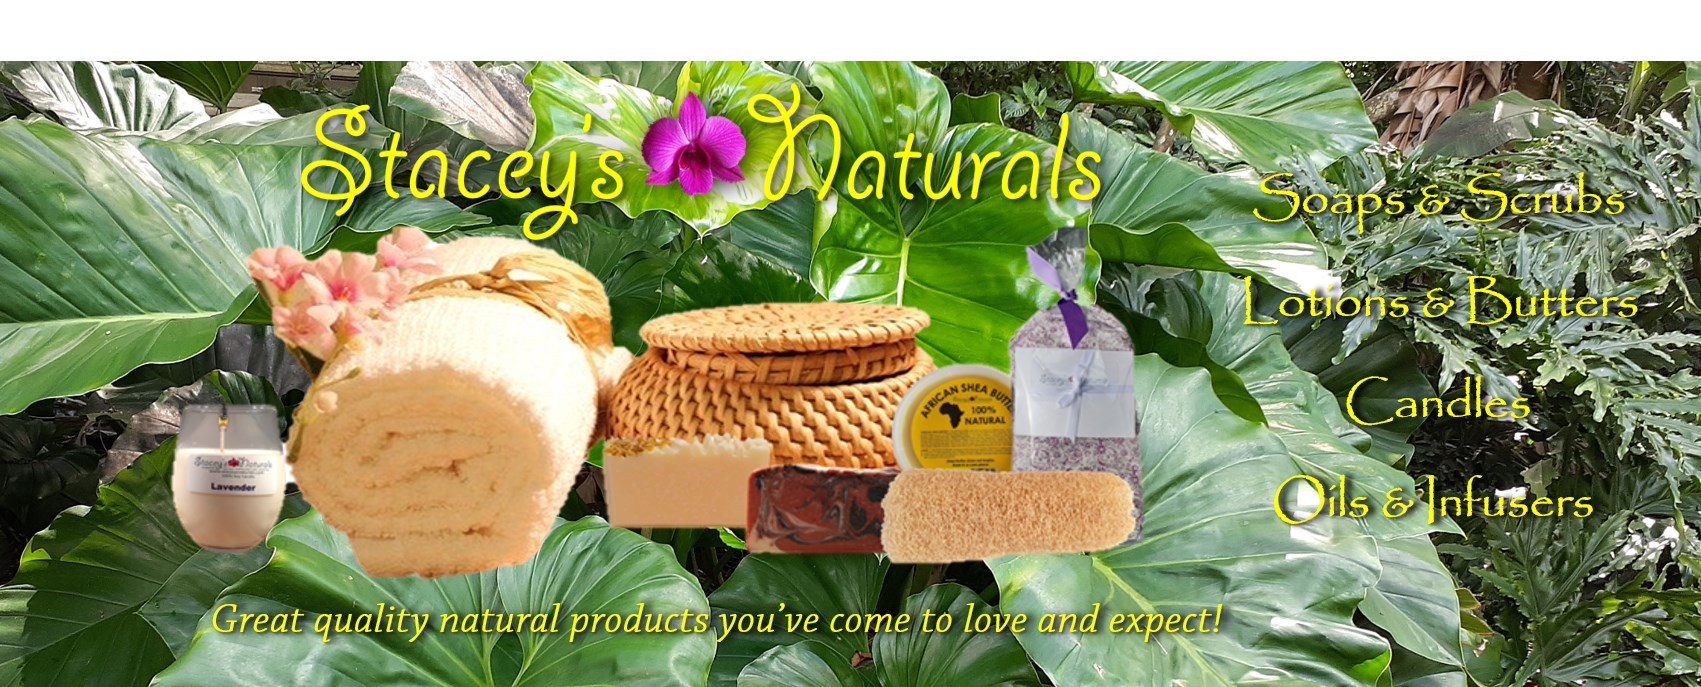 Stacey's Naturals – Health, beauty and wellness